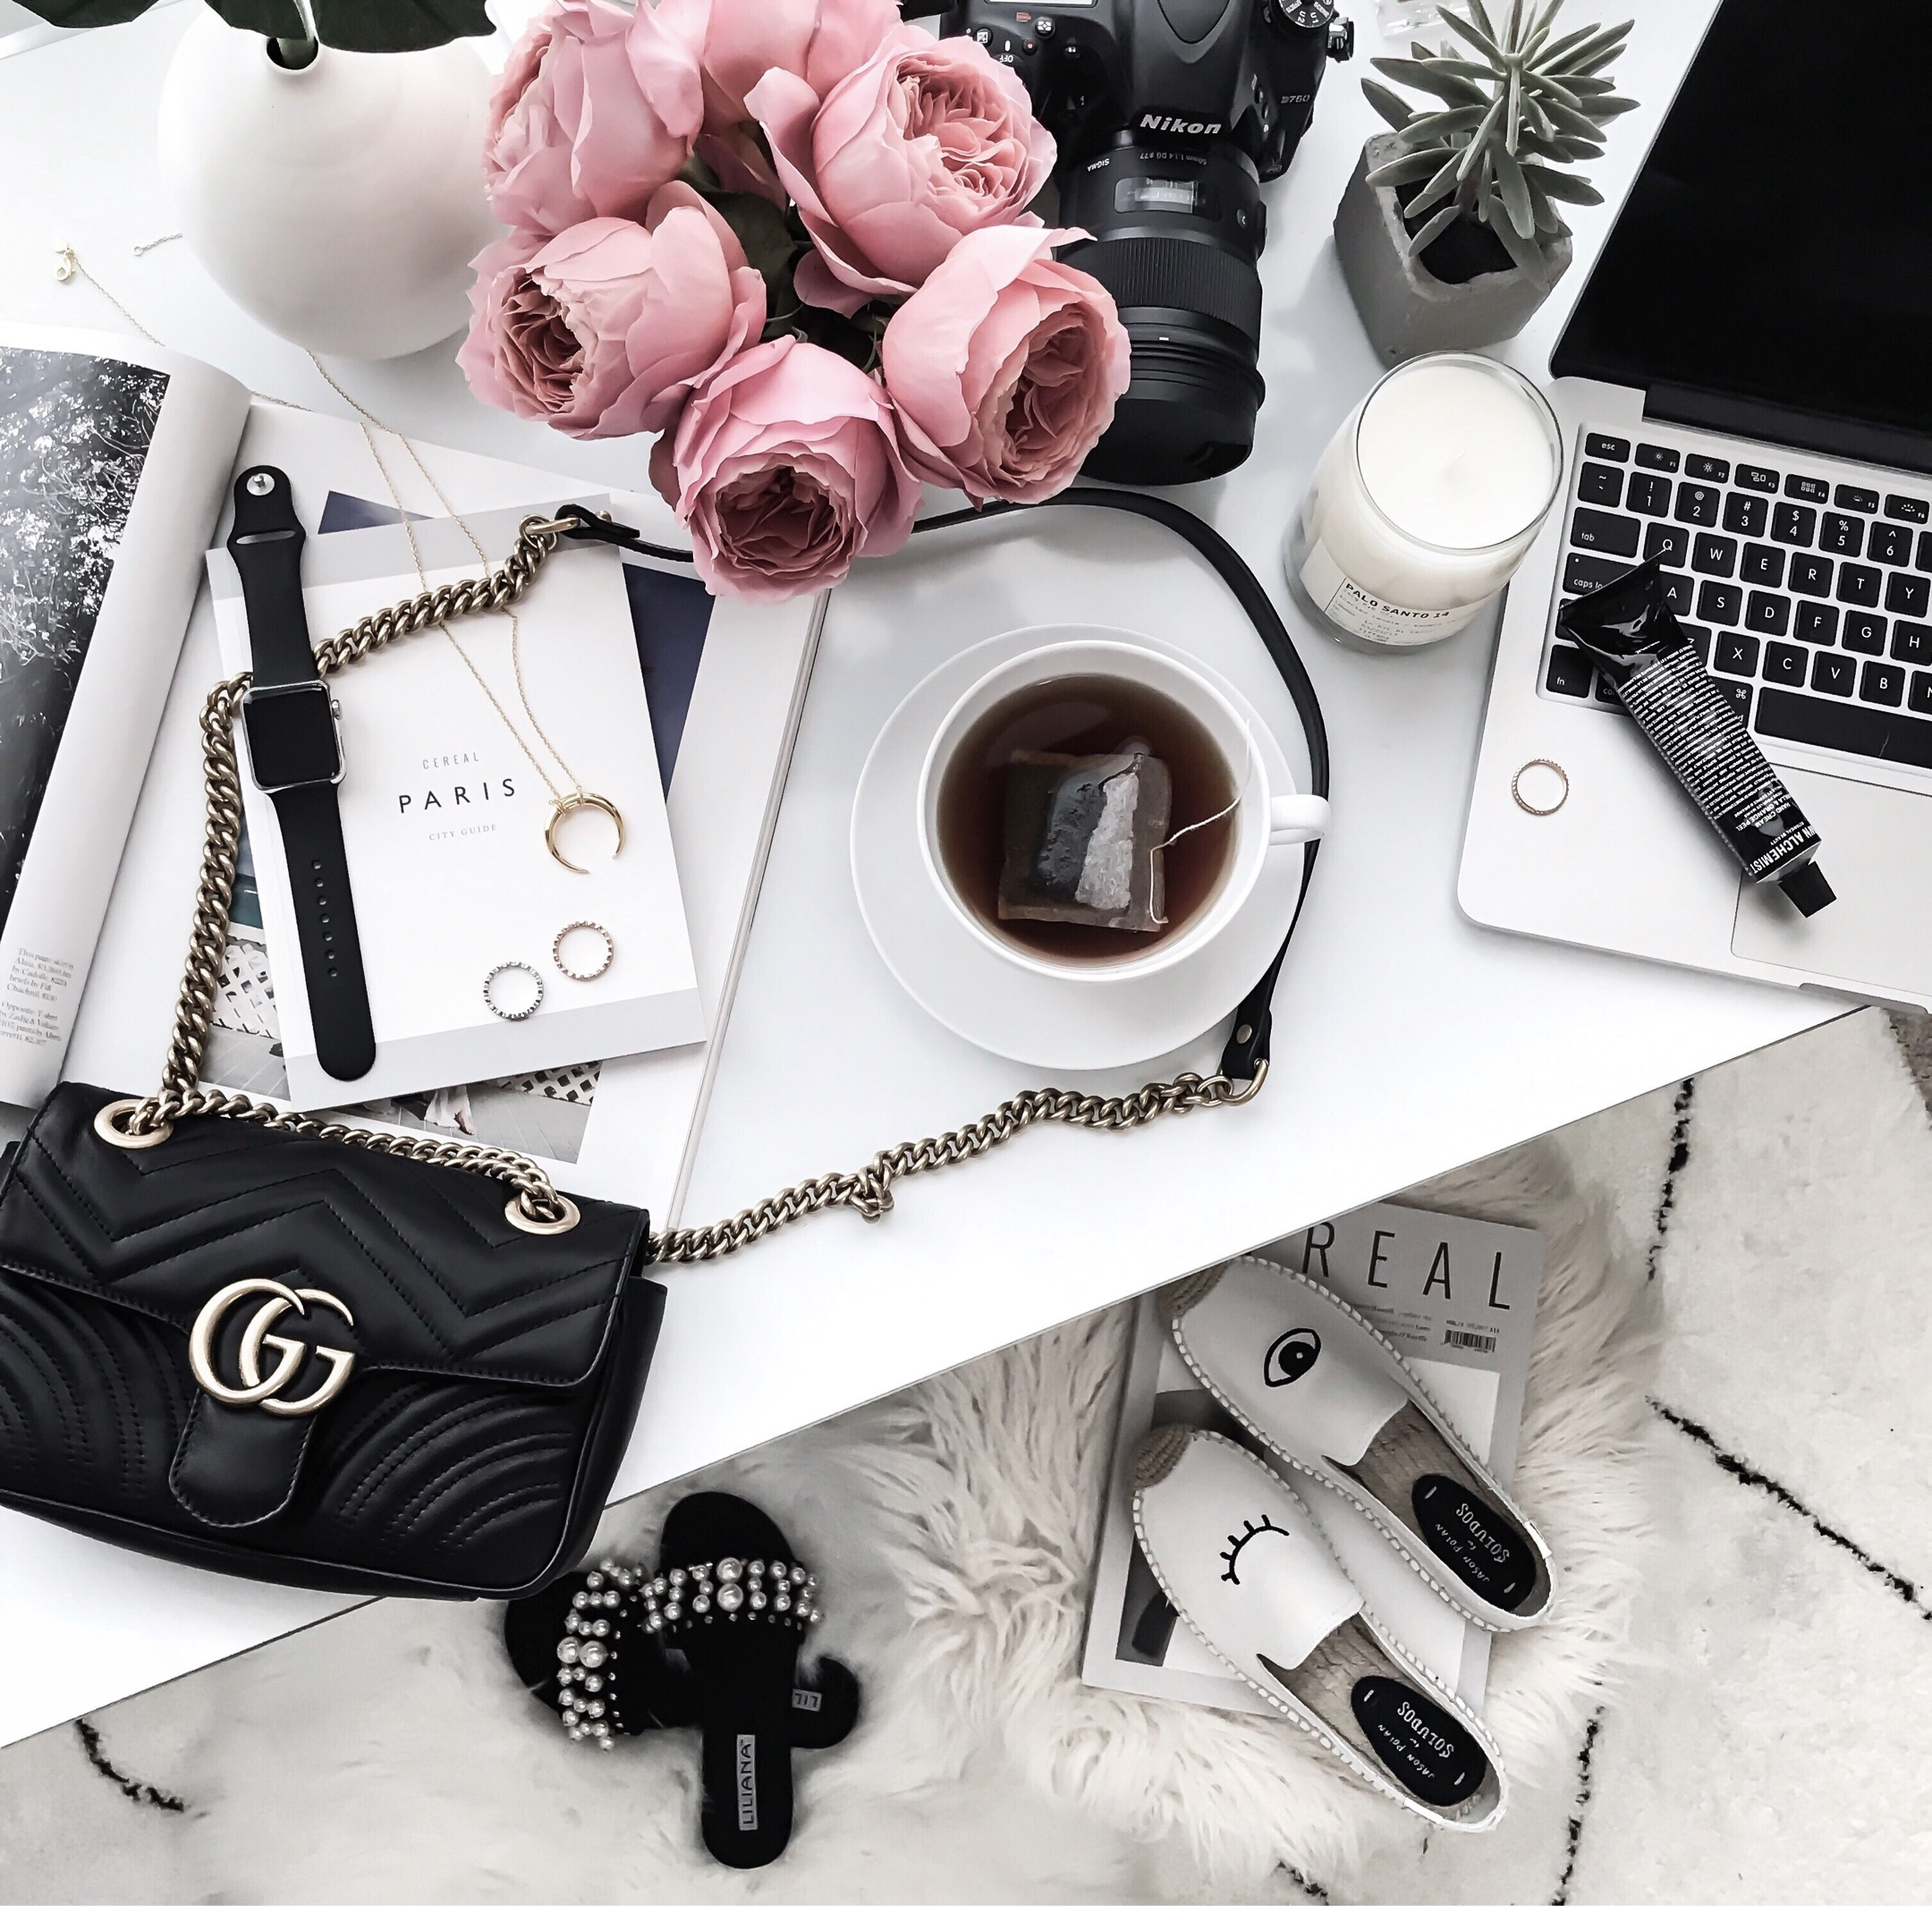 Tiffany Jais Houston fashion and lifestyle blogger | Gucci marmot bag, pearl slides, flatlay, vsco